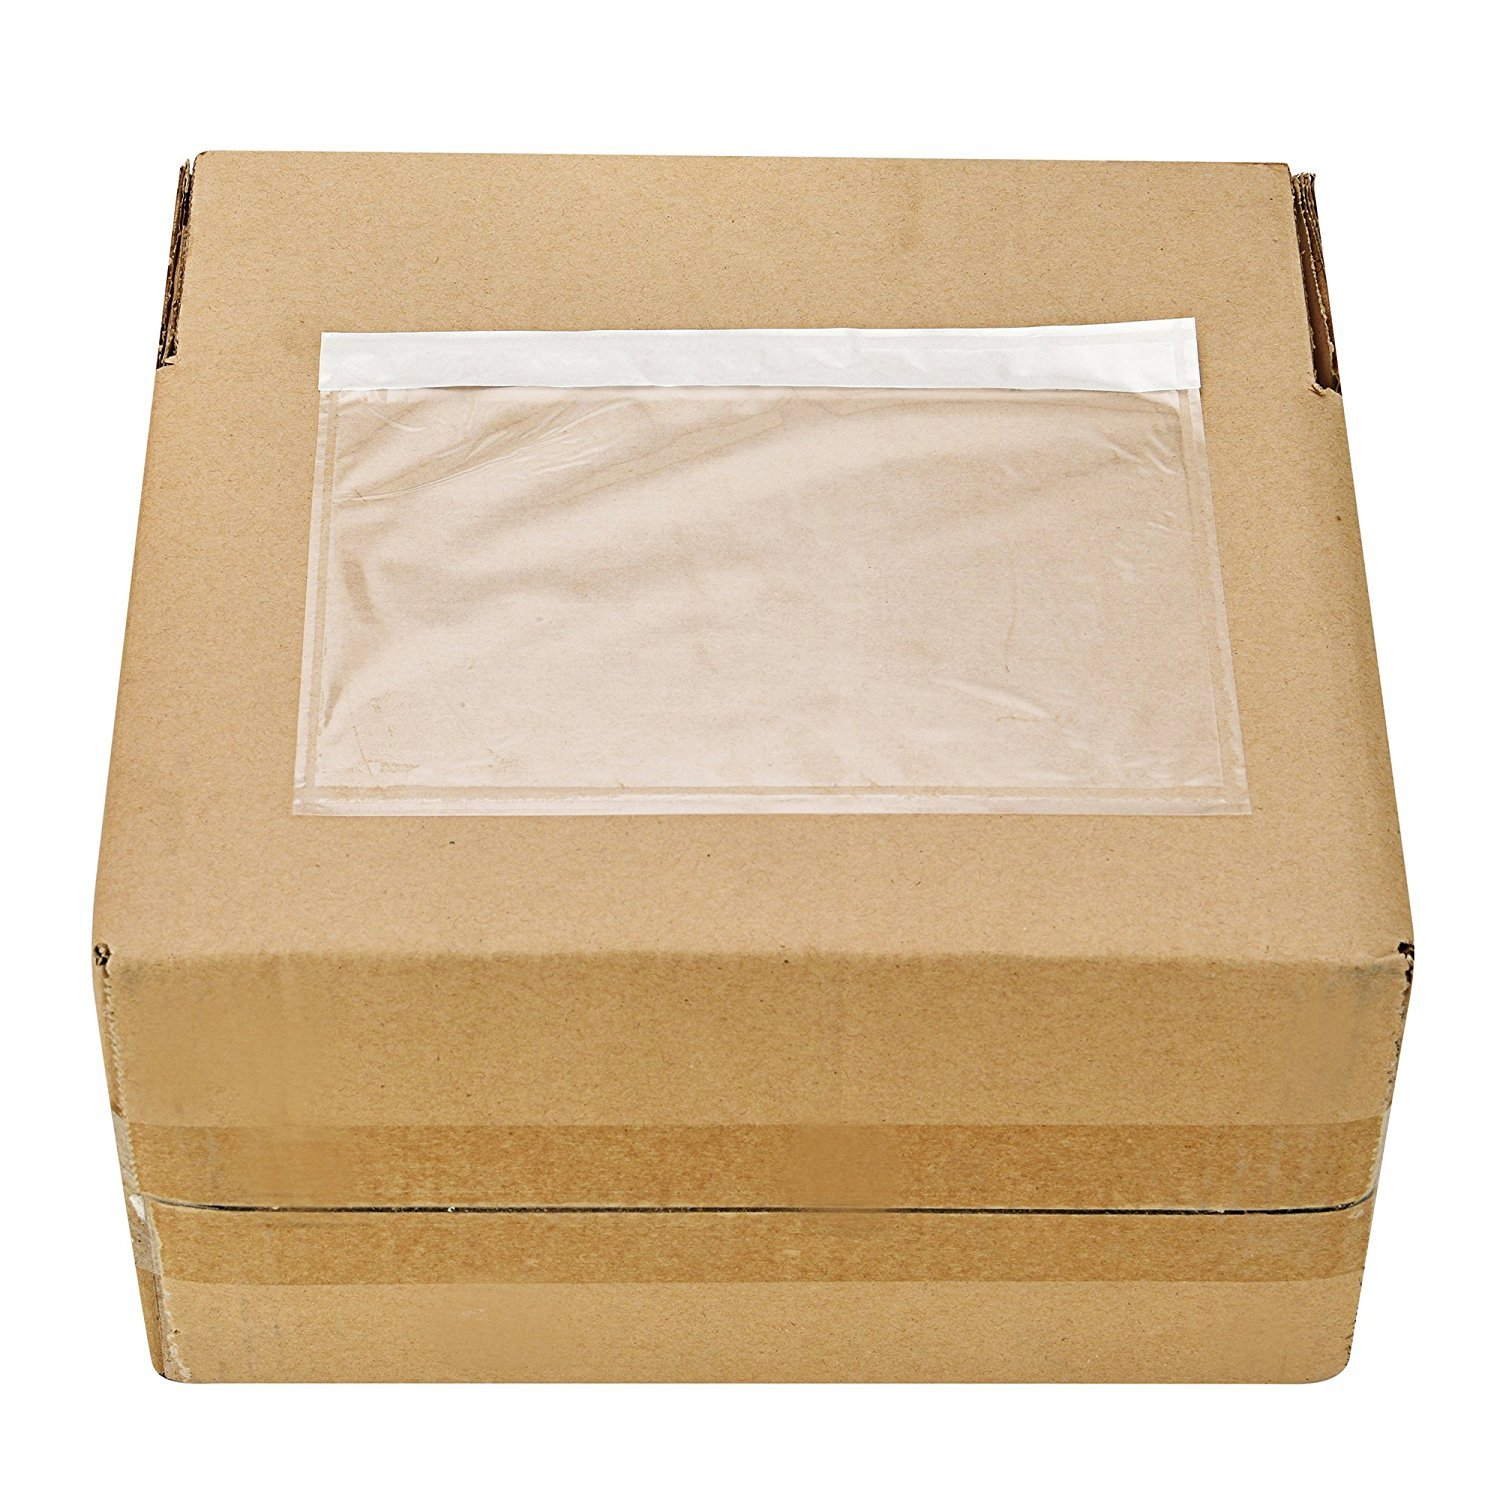 MFLABEL - Clear Adhesive Top Loading Packing List 7.5'' x 5.5'' Shipping Label Envelopes Pouches - 500pcs by MFLABEL (Image #3)